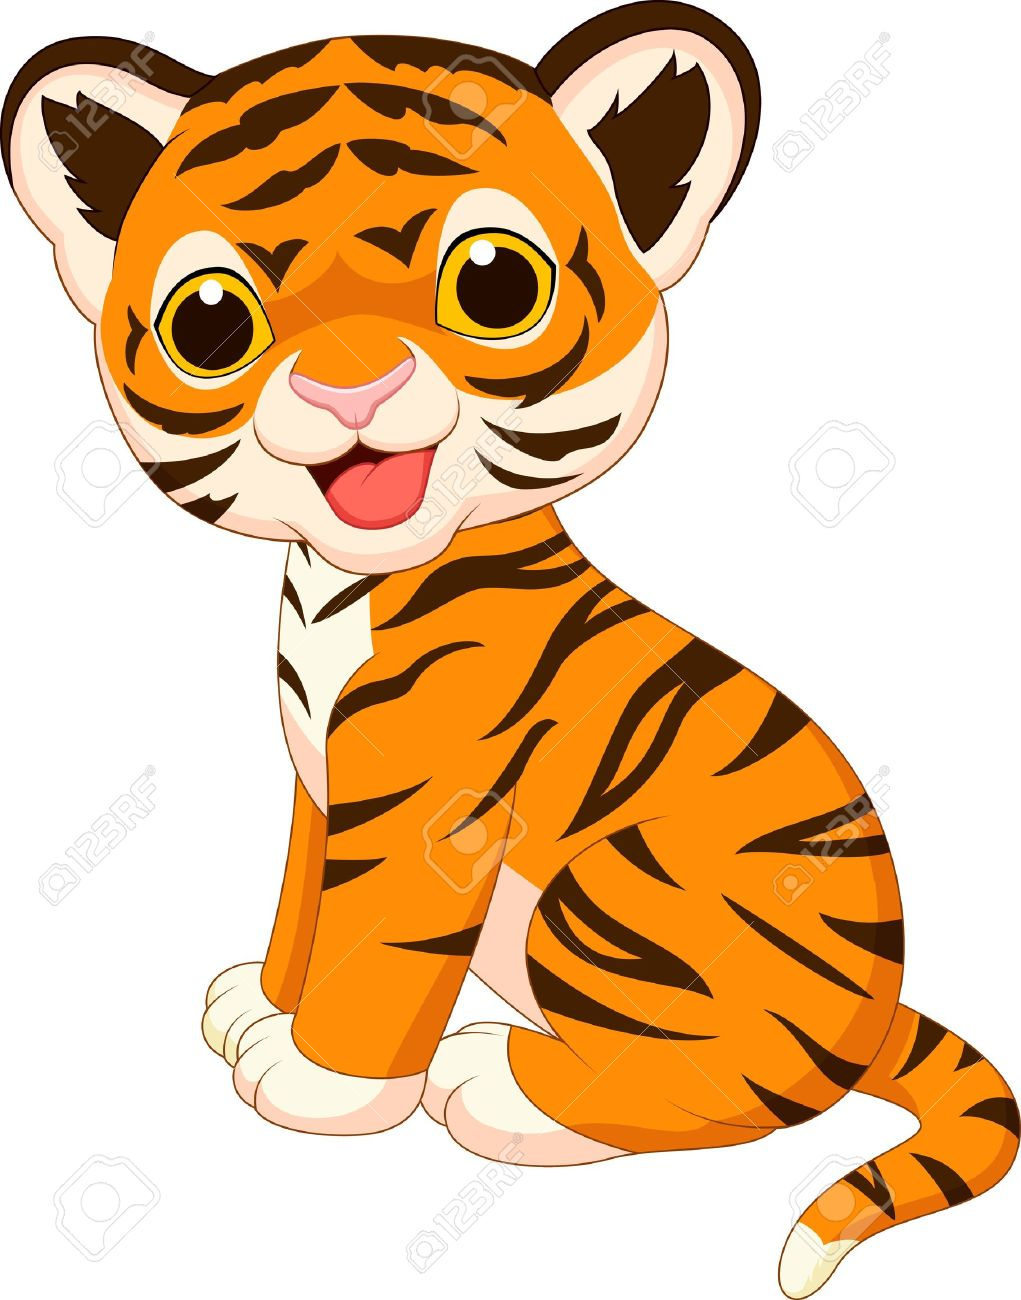 38,915 Tiger Stock Vector Illustration And Royalty Free Tiger Clipart.